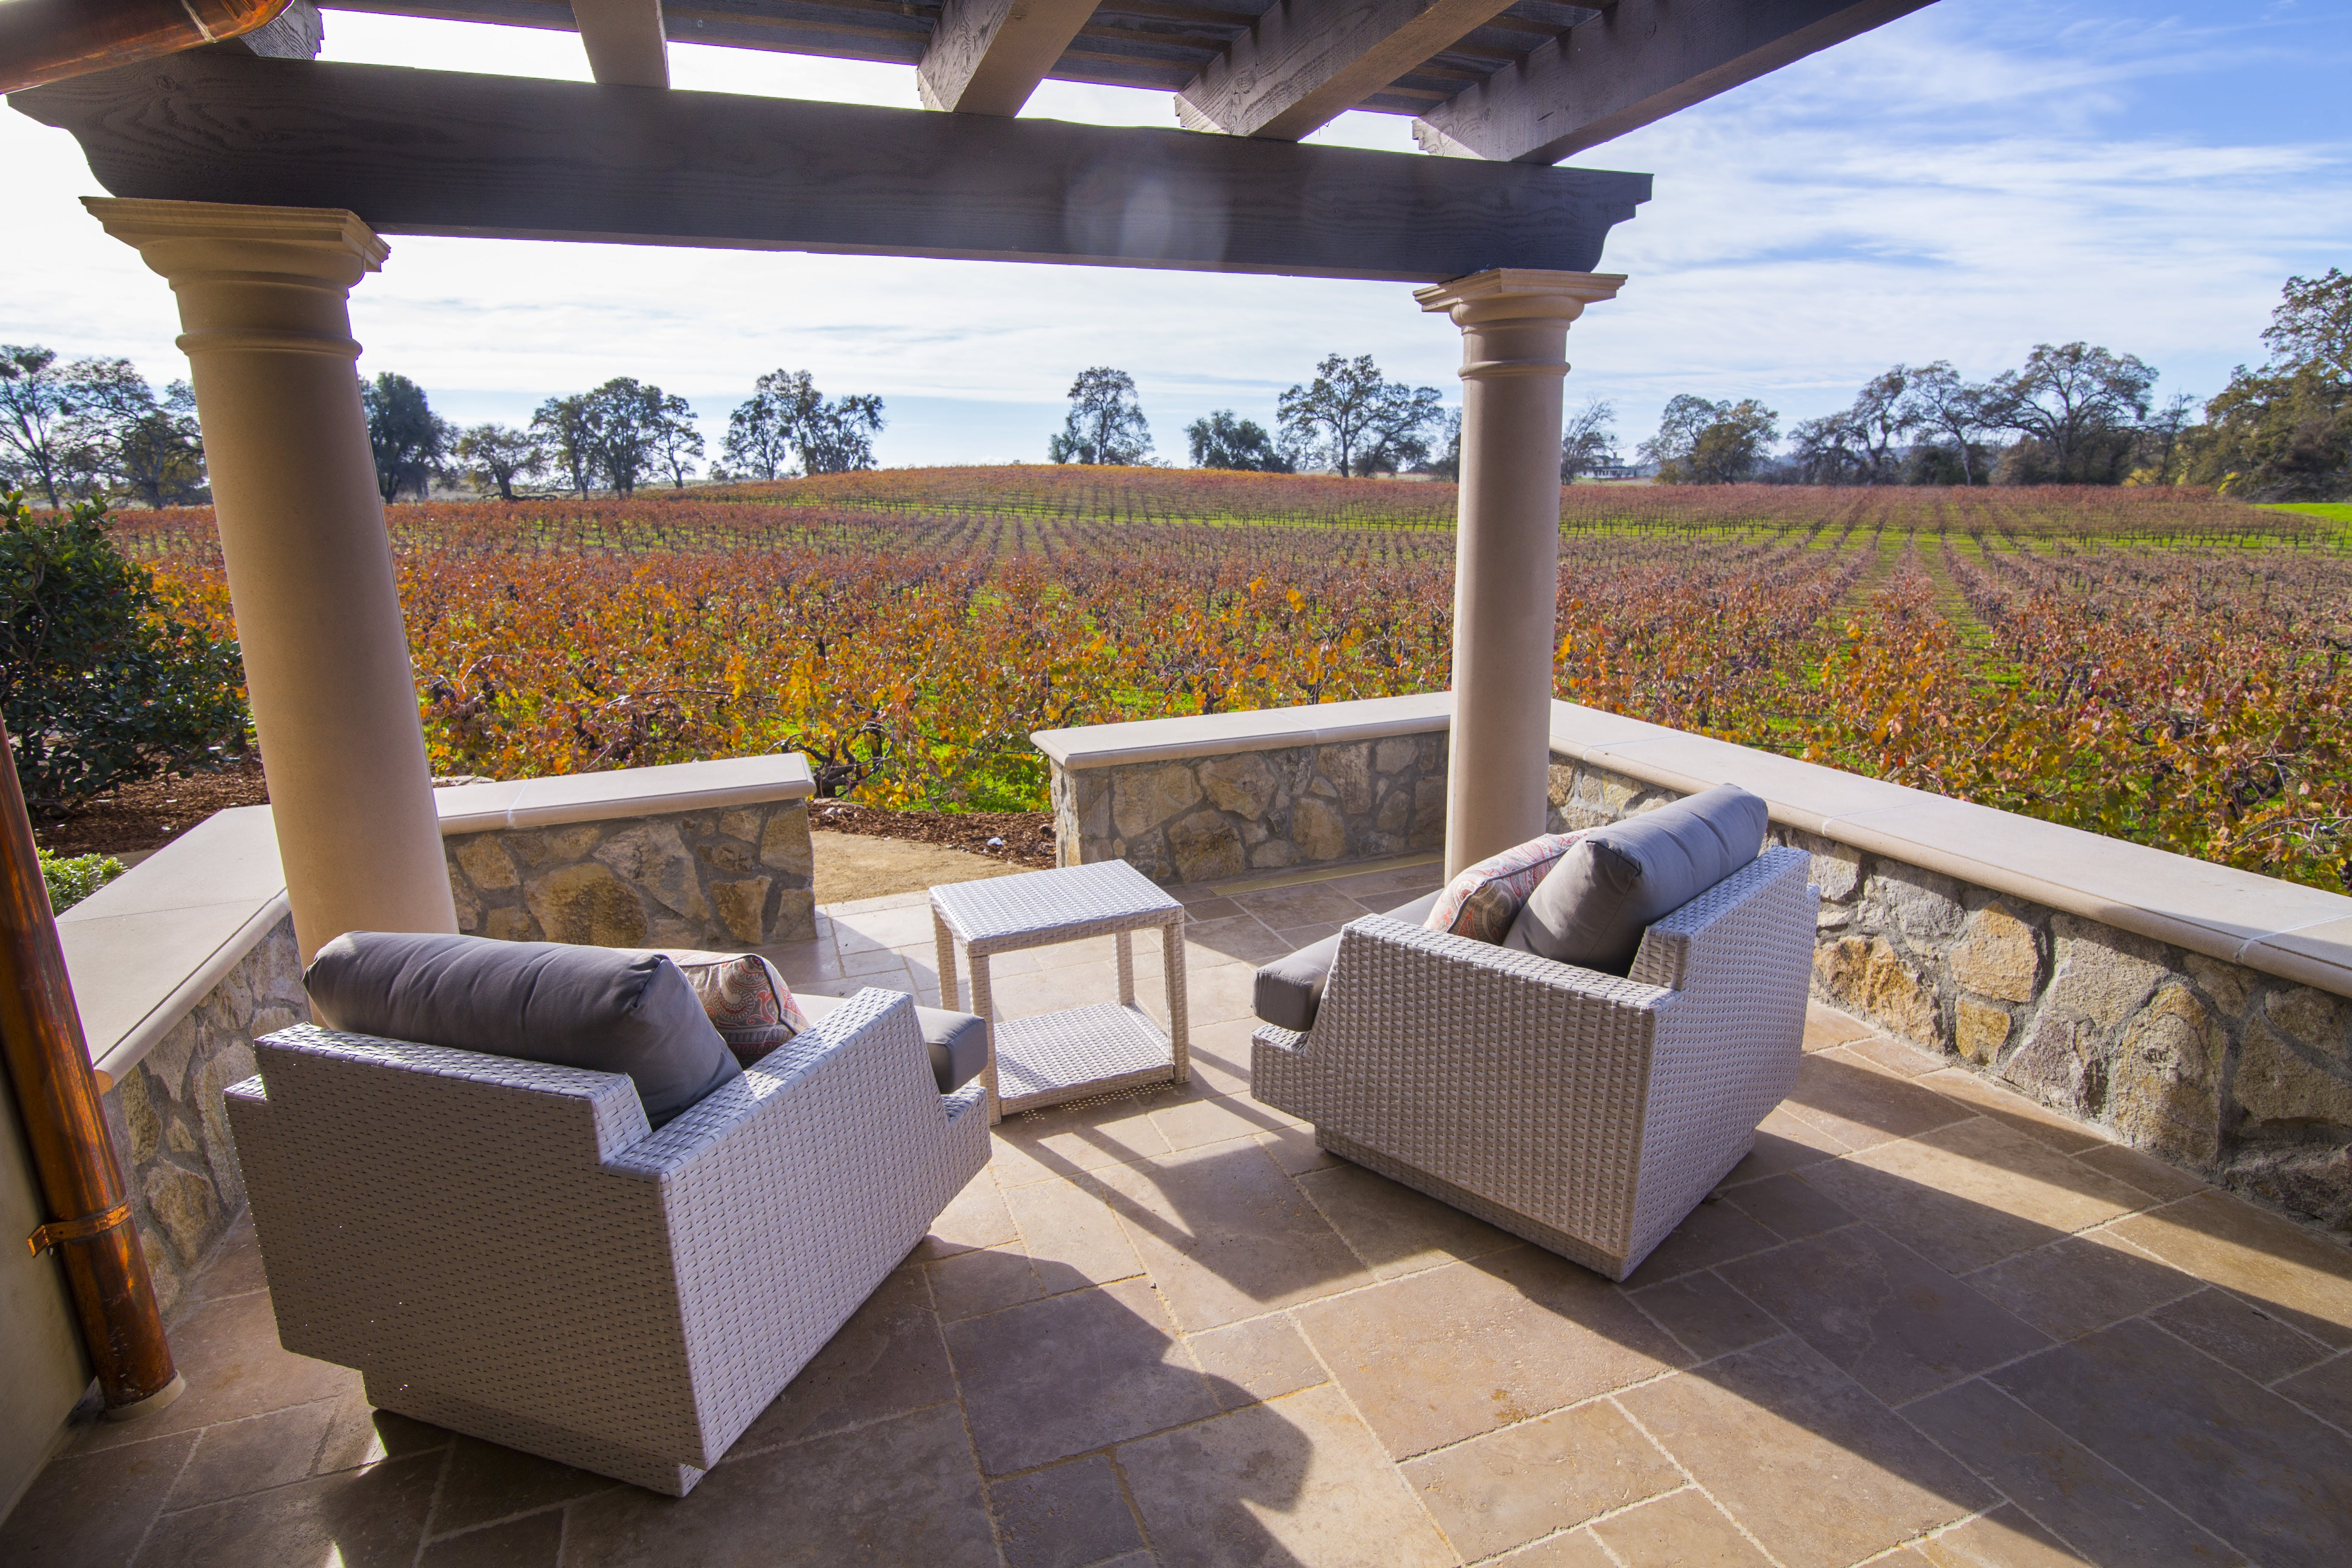 Imagine having your coffee in the morning and your wine in the evening on this private patio with stunning vineyard views